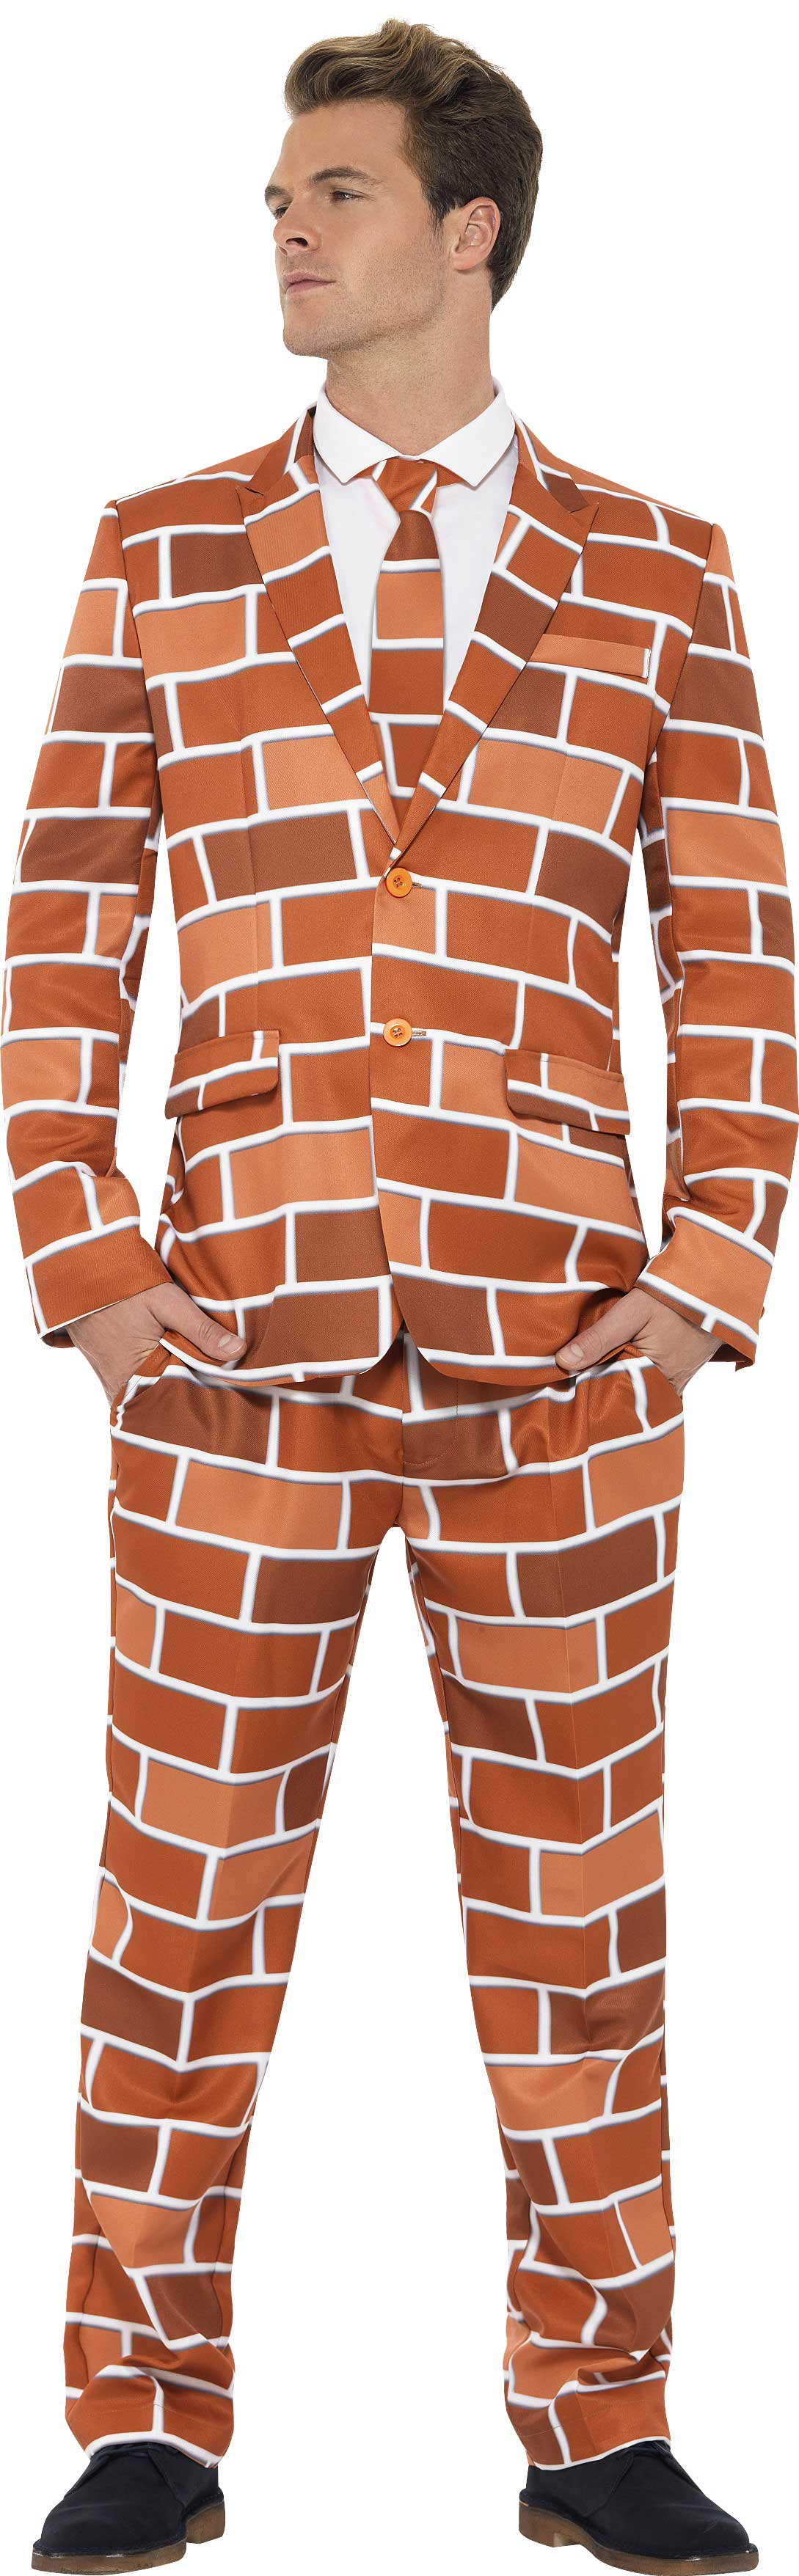 Men S Brick Pattern Off The Wall Stand Out Suit Fancy